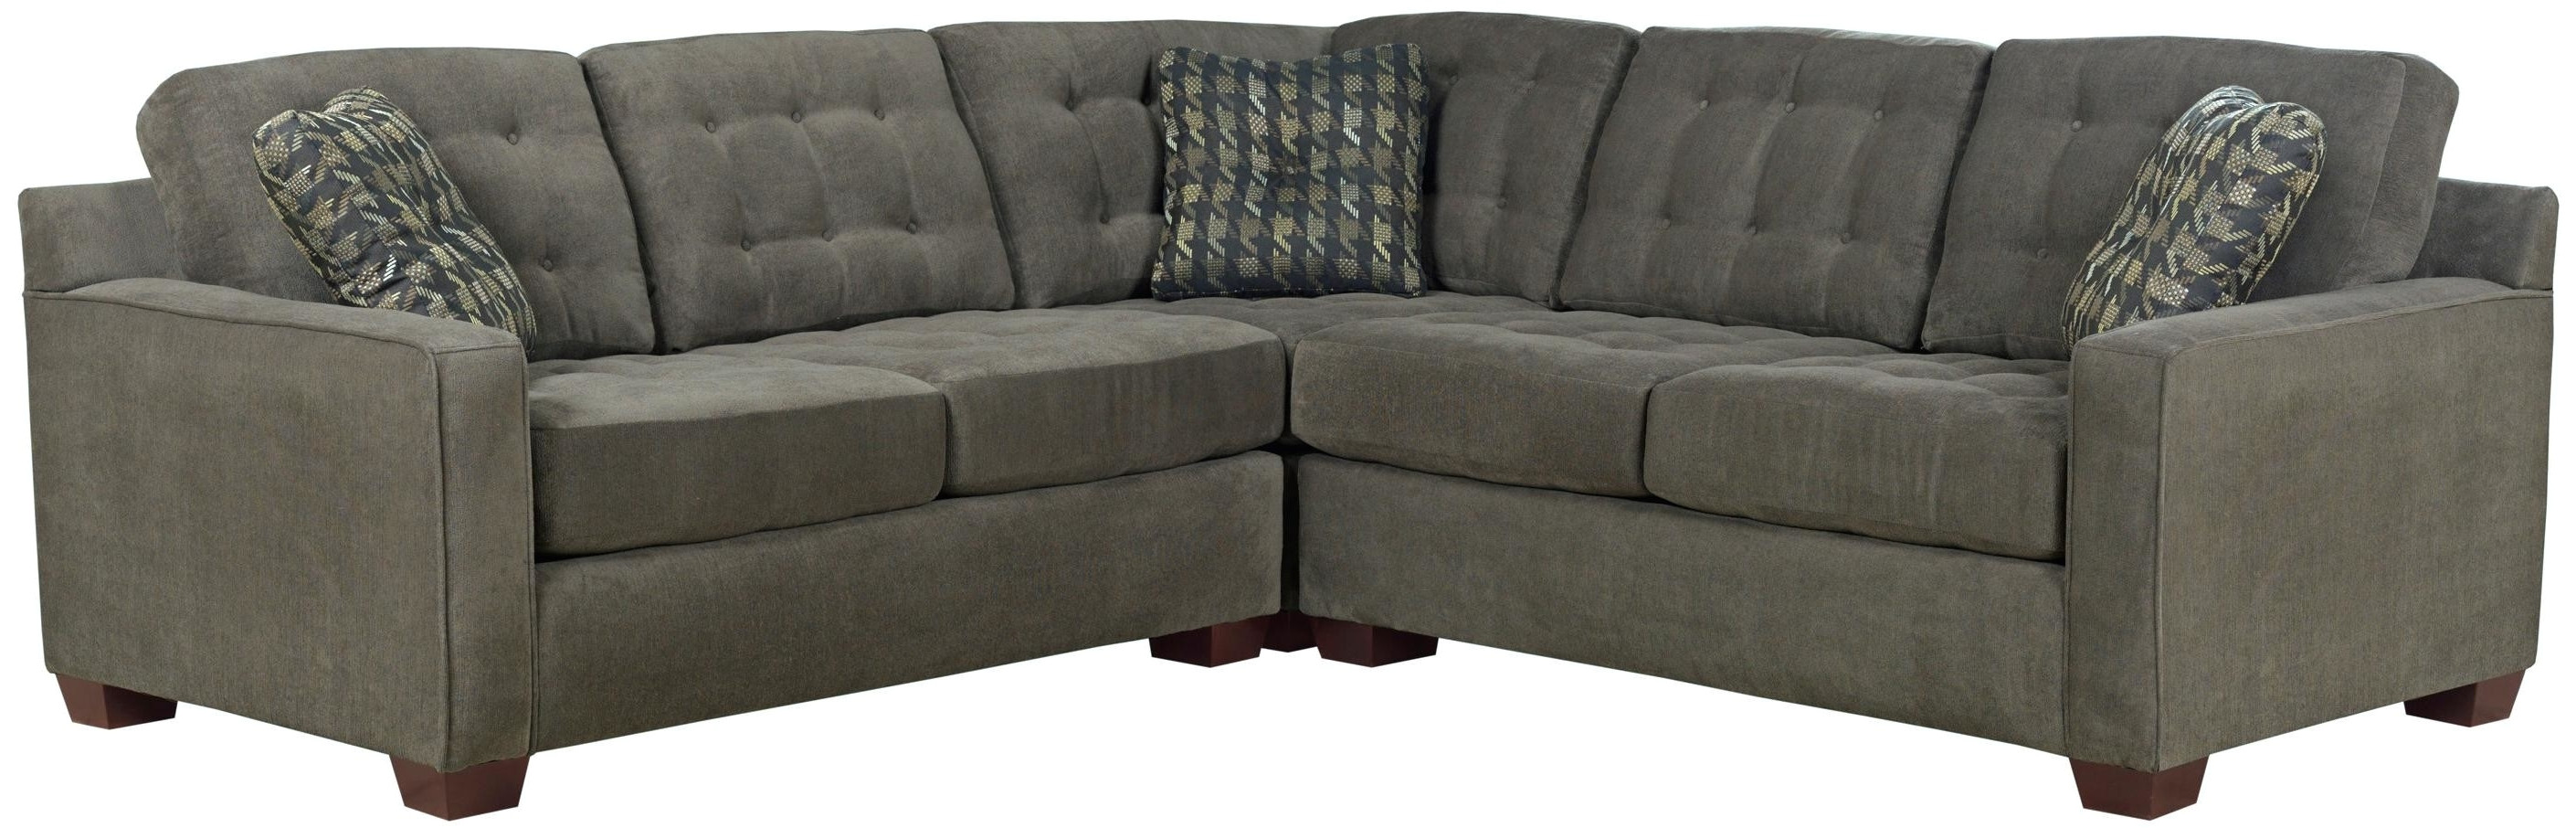 homemakers furniture des moines iowa for 2018 des moines ia sectional sofas view 10 of